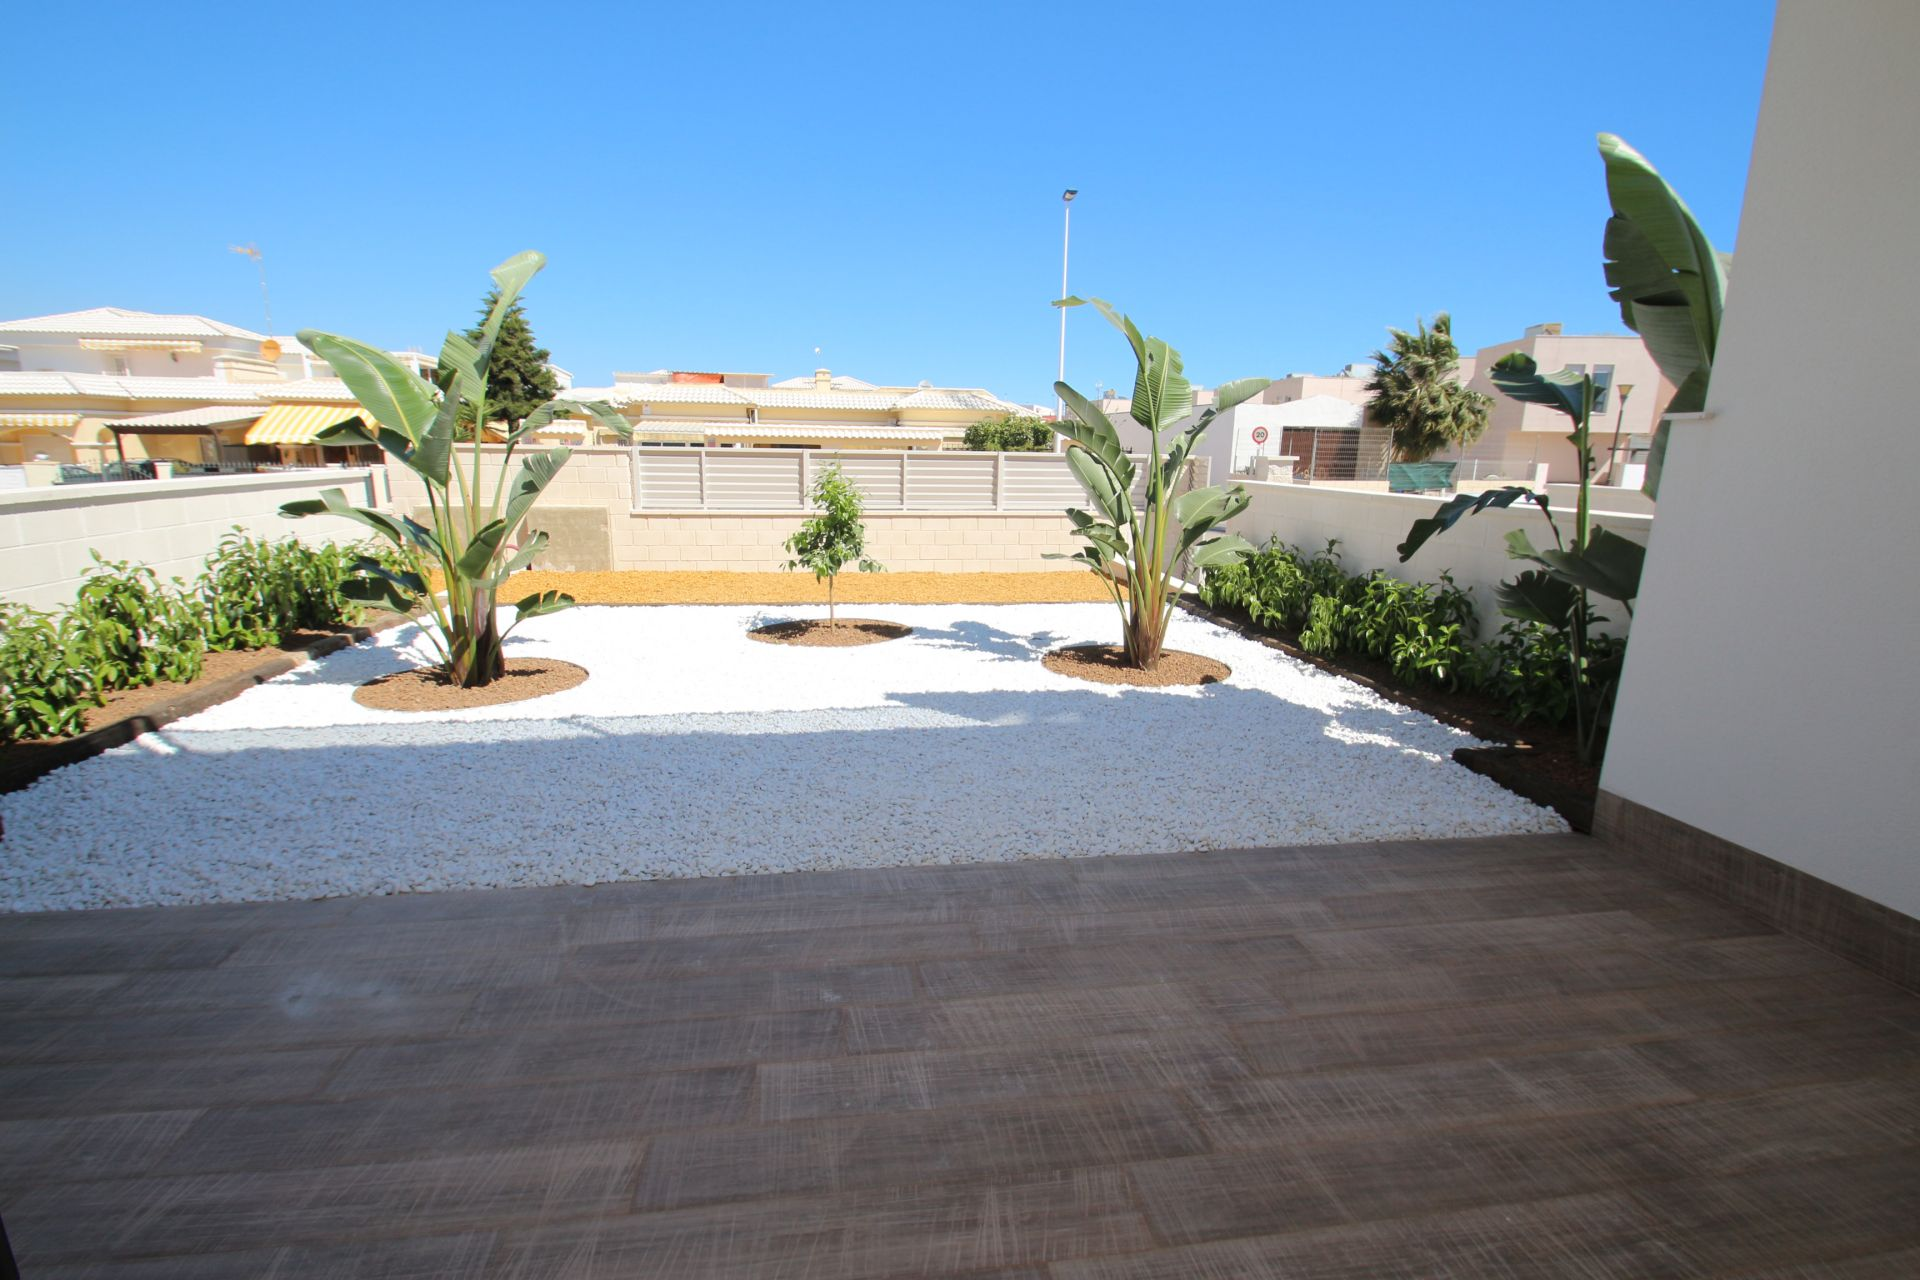 3 bedroom modern bungalows with garden or solarium in Torrevieja 19